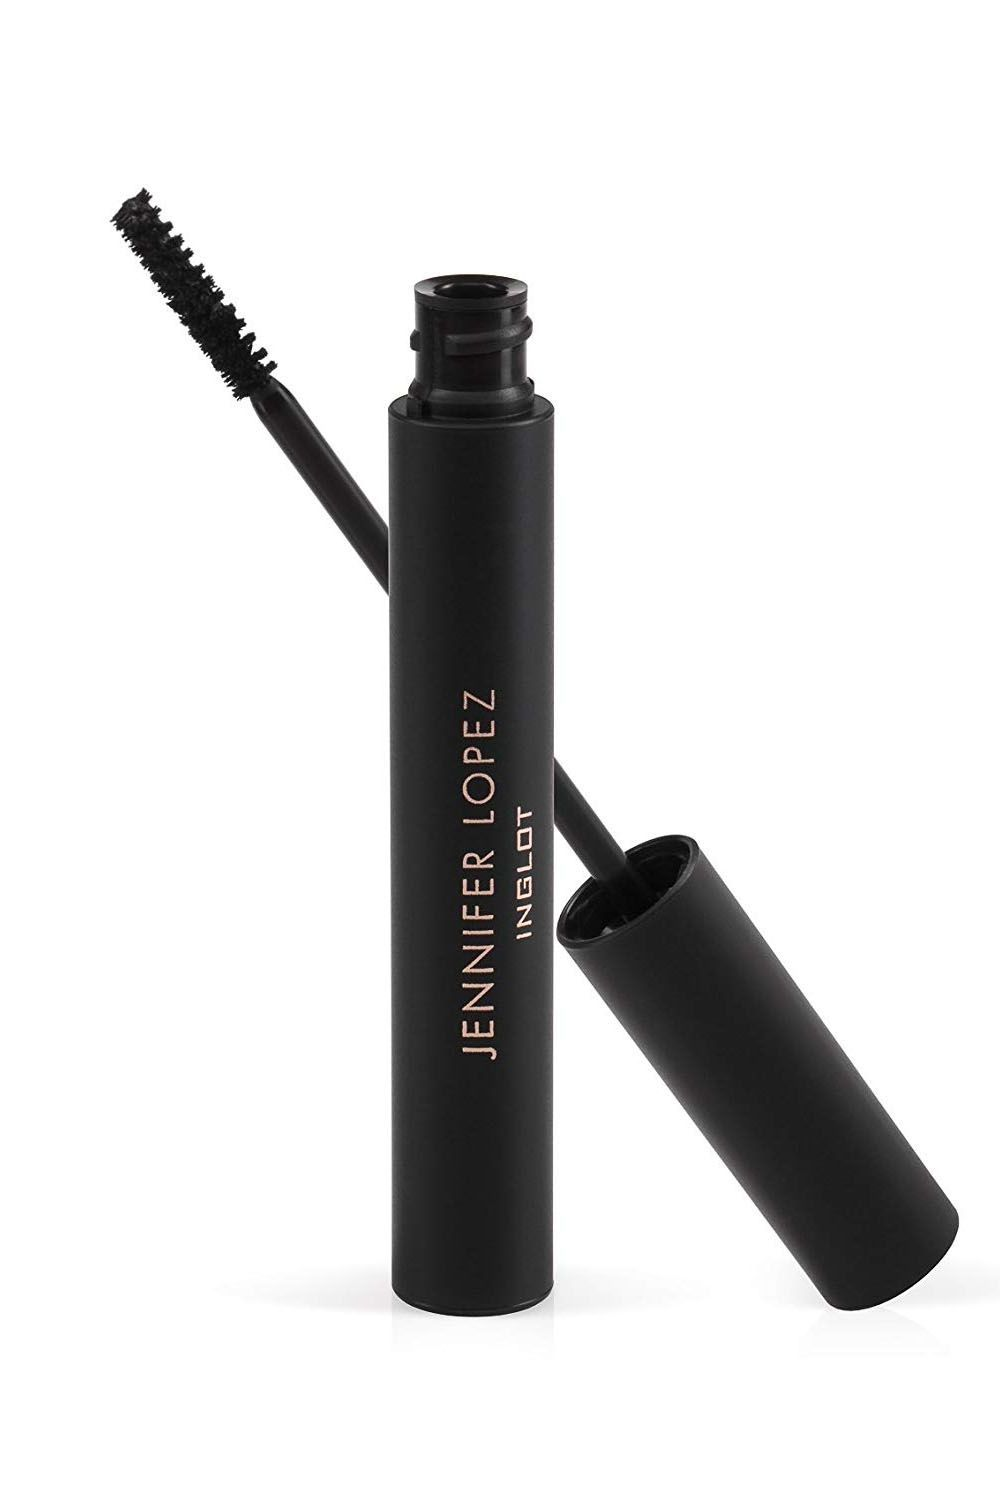 c102c1b7f58 16 Best Mascaras for Long Lashes According to Makeup Artists - Best  Drugstore and Sephora Mascaras